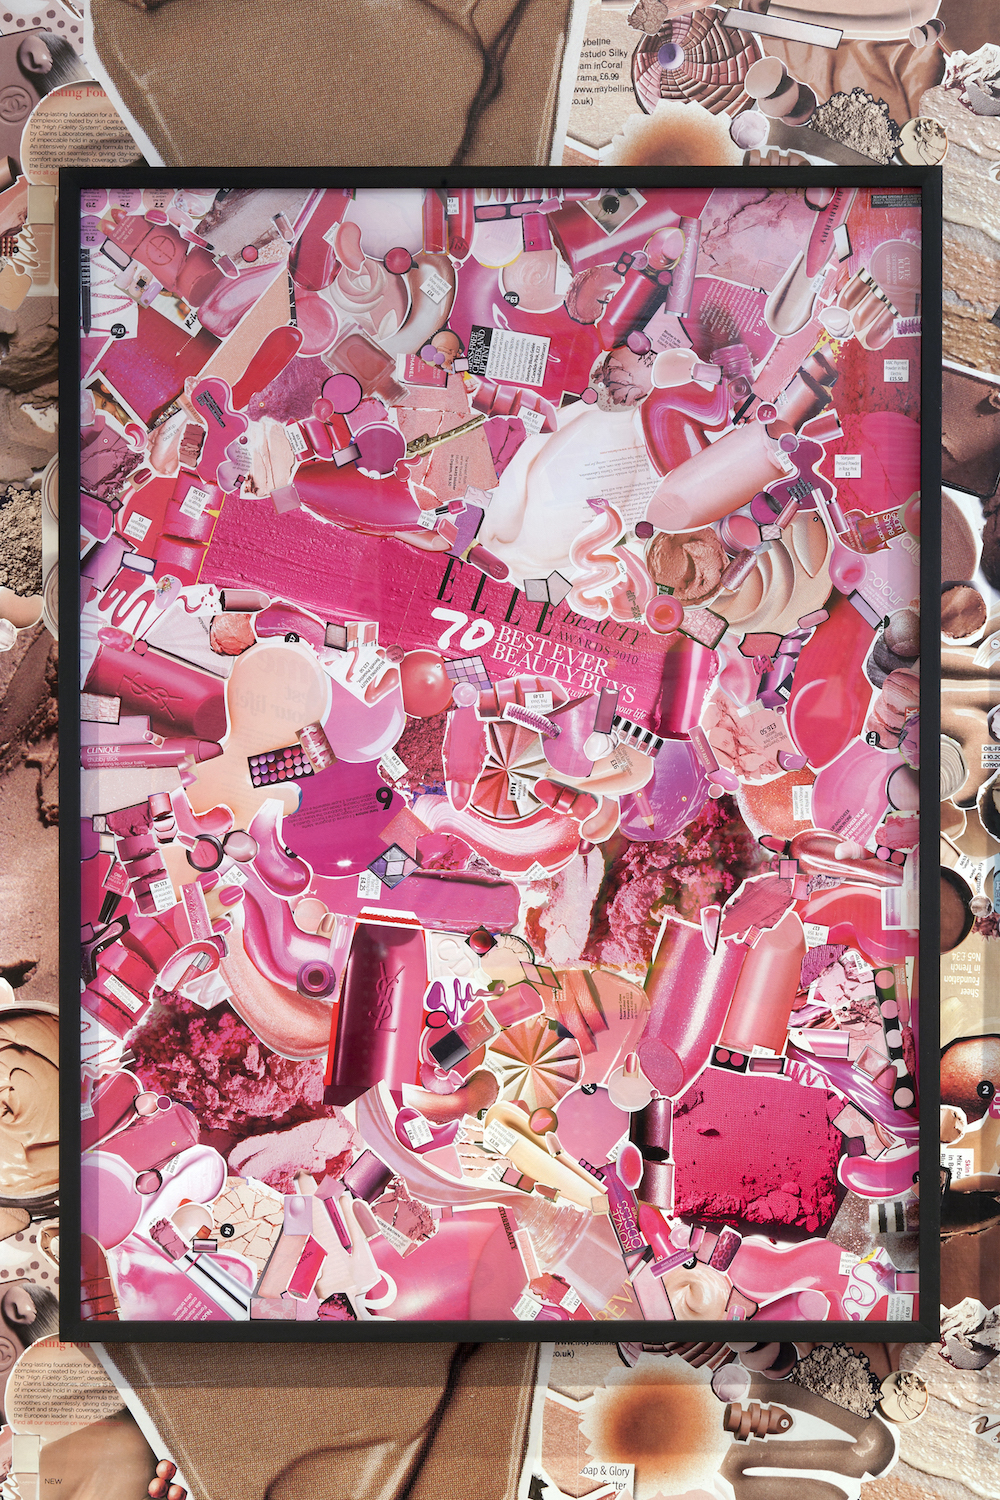 Ludovica Gioscia, Pink, 2011. Make-up ads on museum board, paper, starch paste. Framed. 84 x 63 cm.